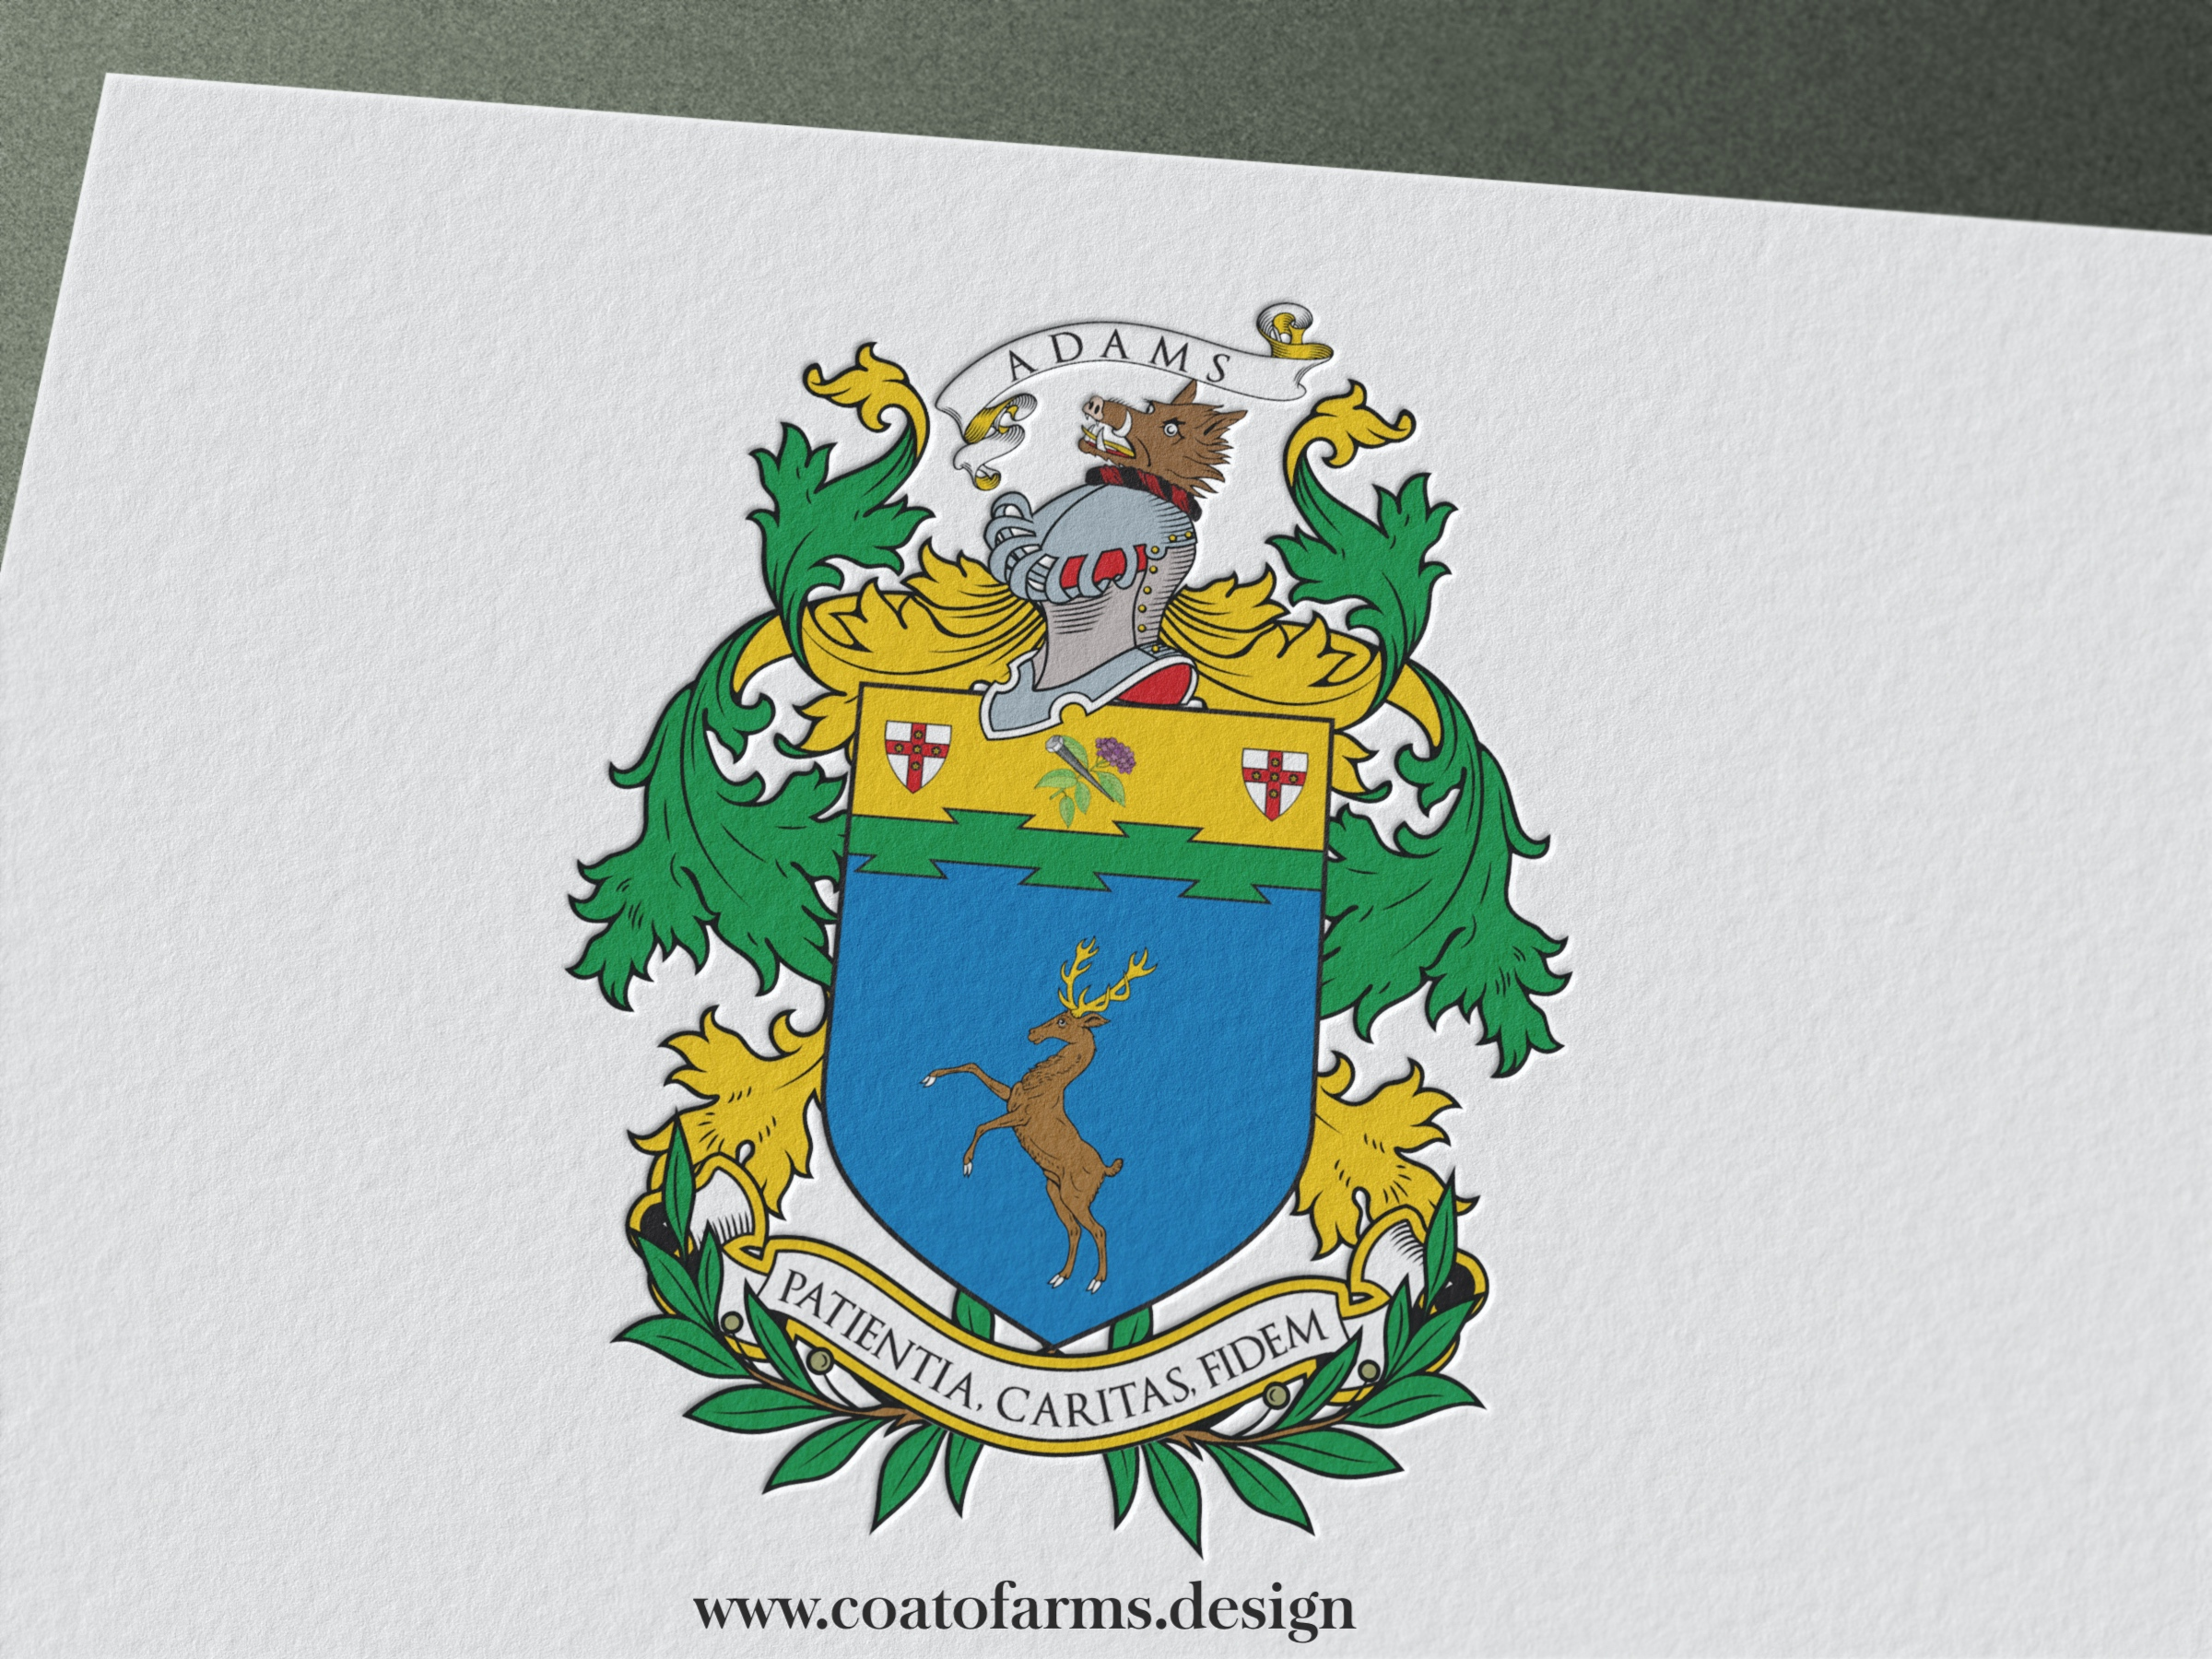 Coat of arms (family crest) I designed for the Adams family from the USA